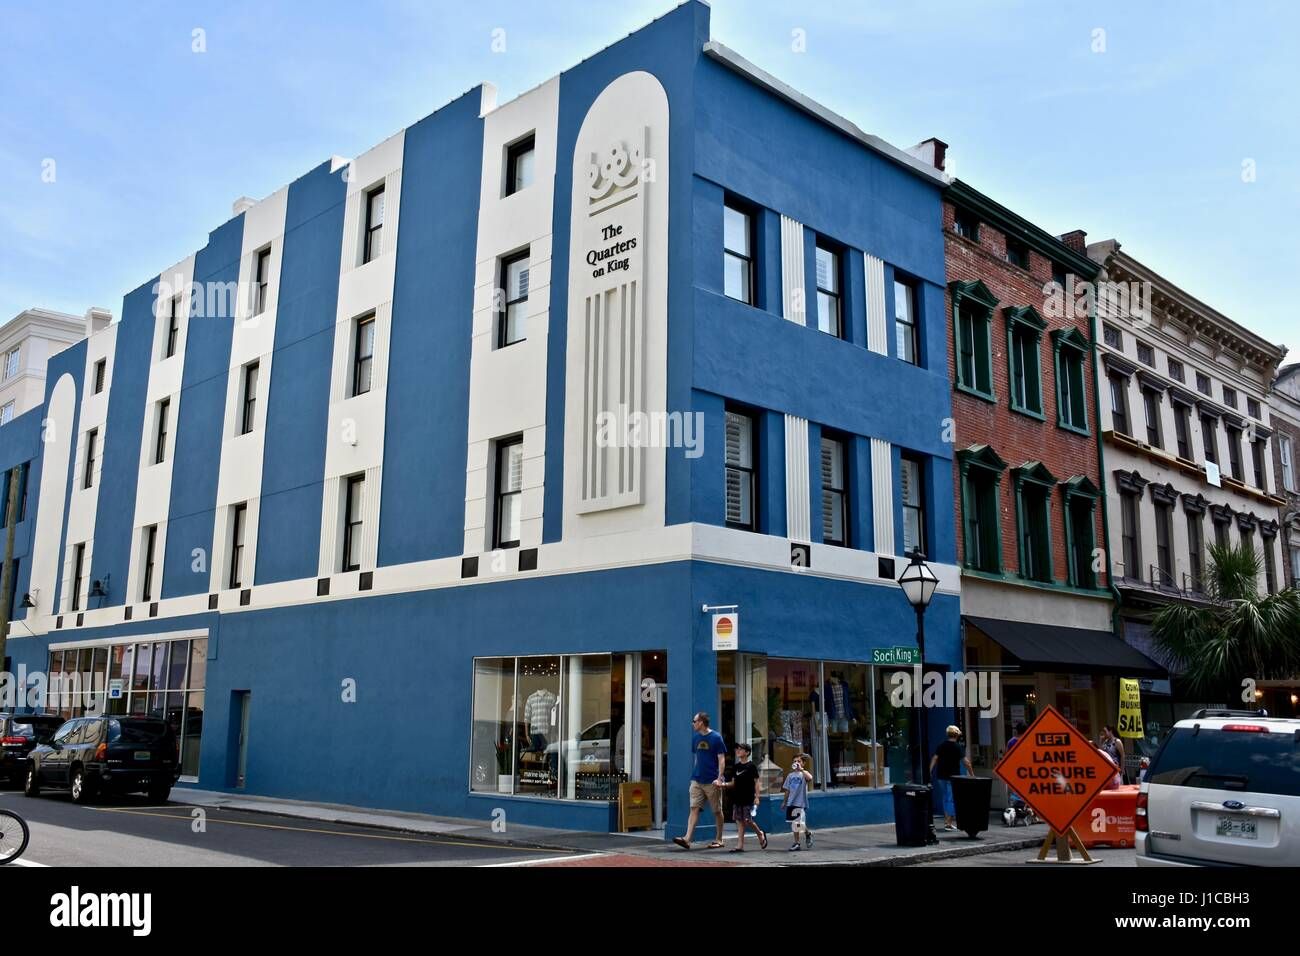 The quarters on king luxury boutique hotel in historic charleston south carolina stock image